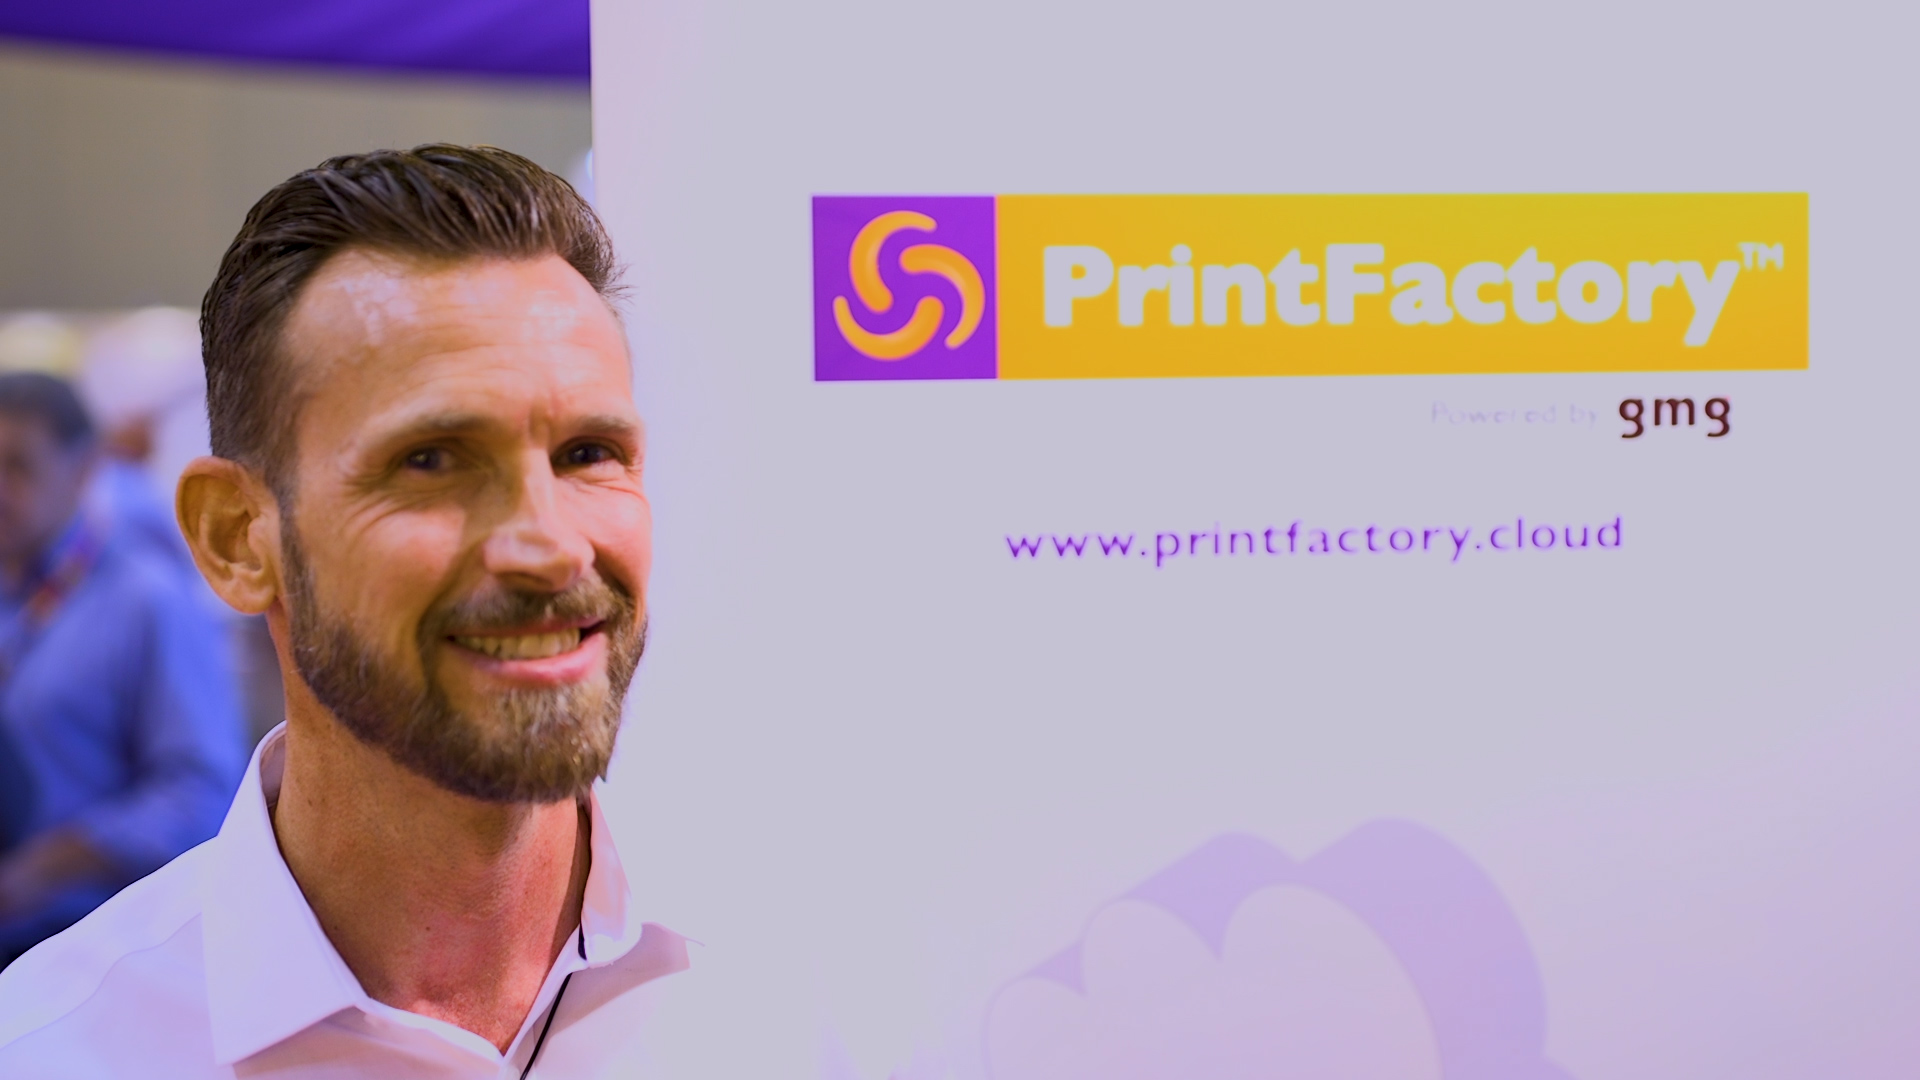 Video preview: GMG Shows off Color Server 5 and PrintFactory by GMG at SGIA 2017